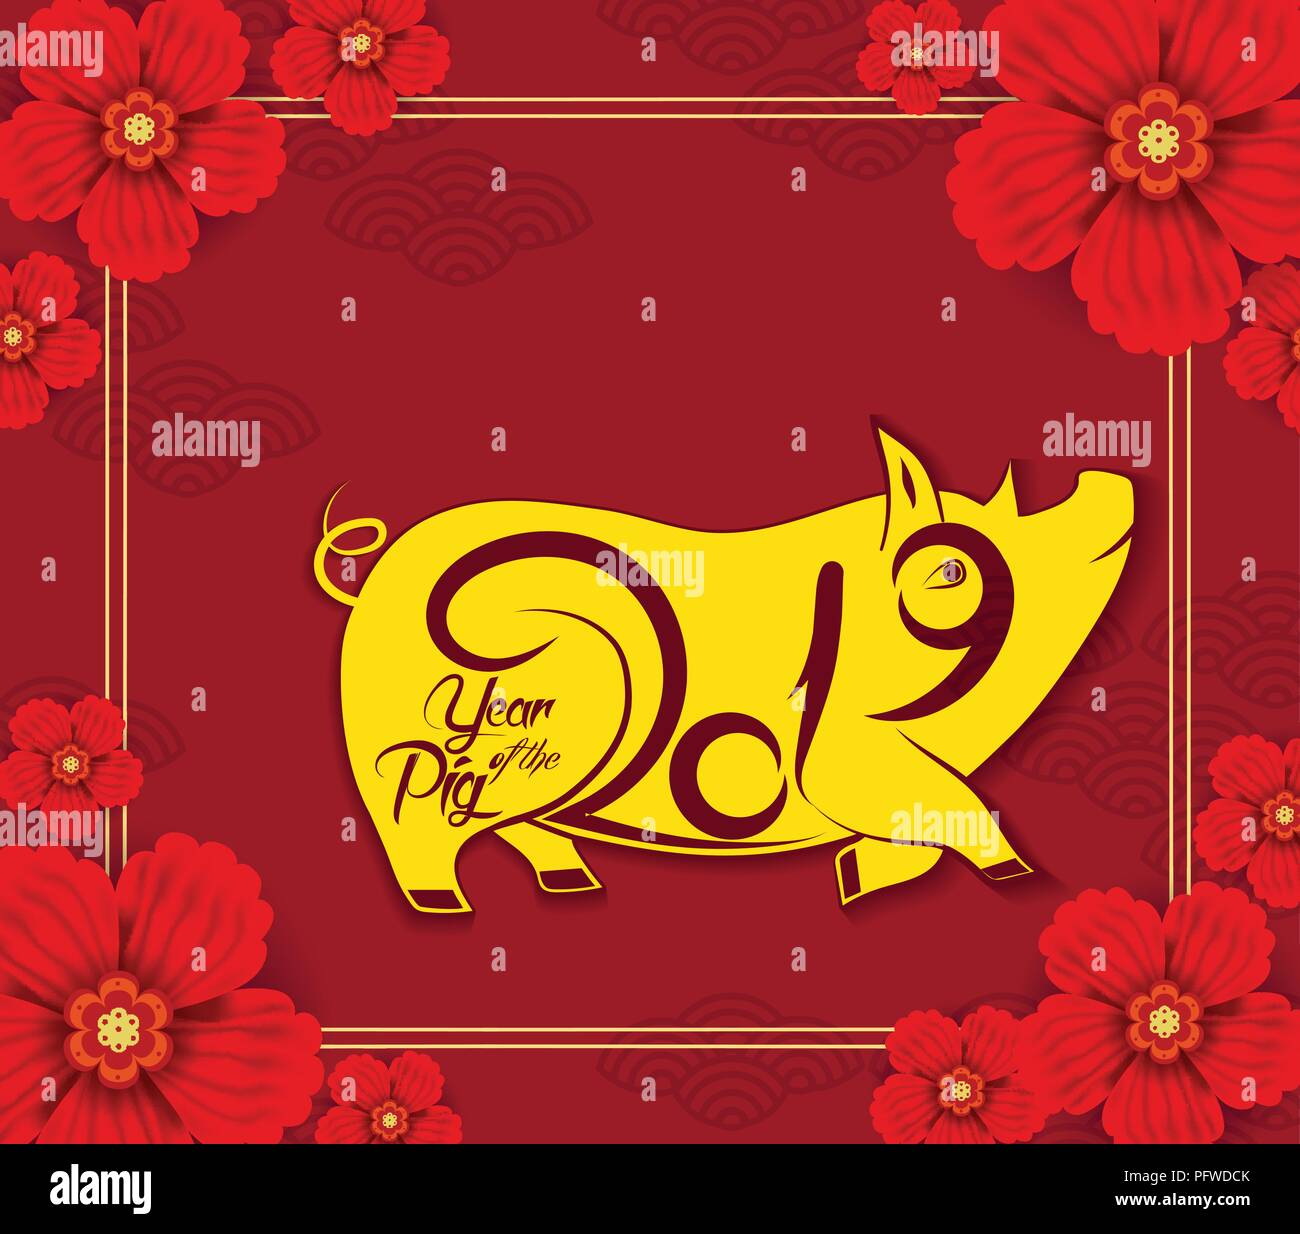 2019 chinese new year calendar year of the pig